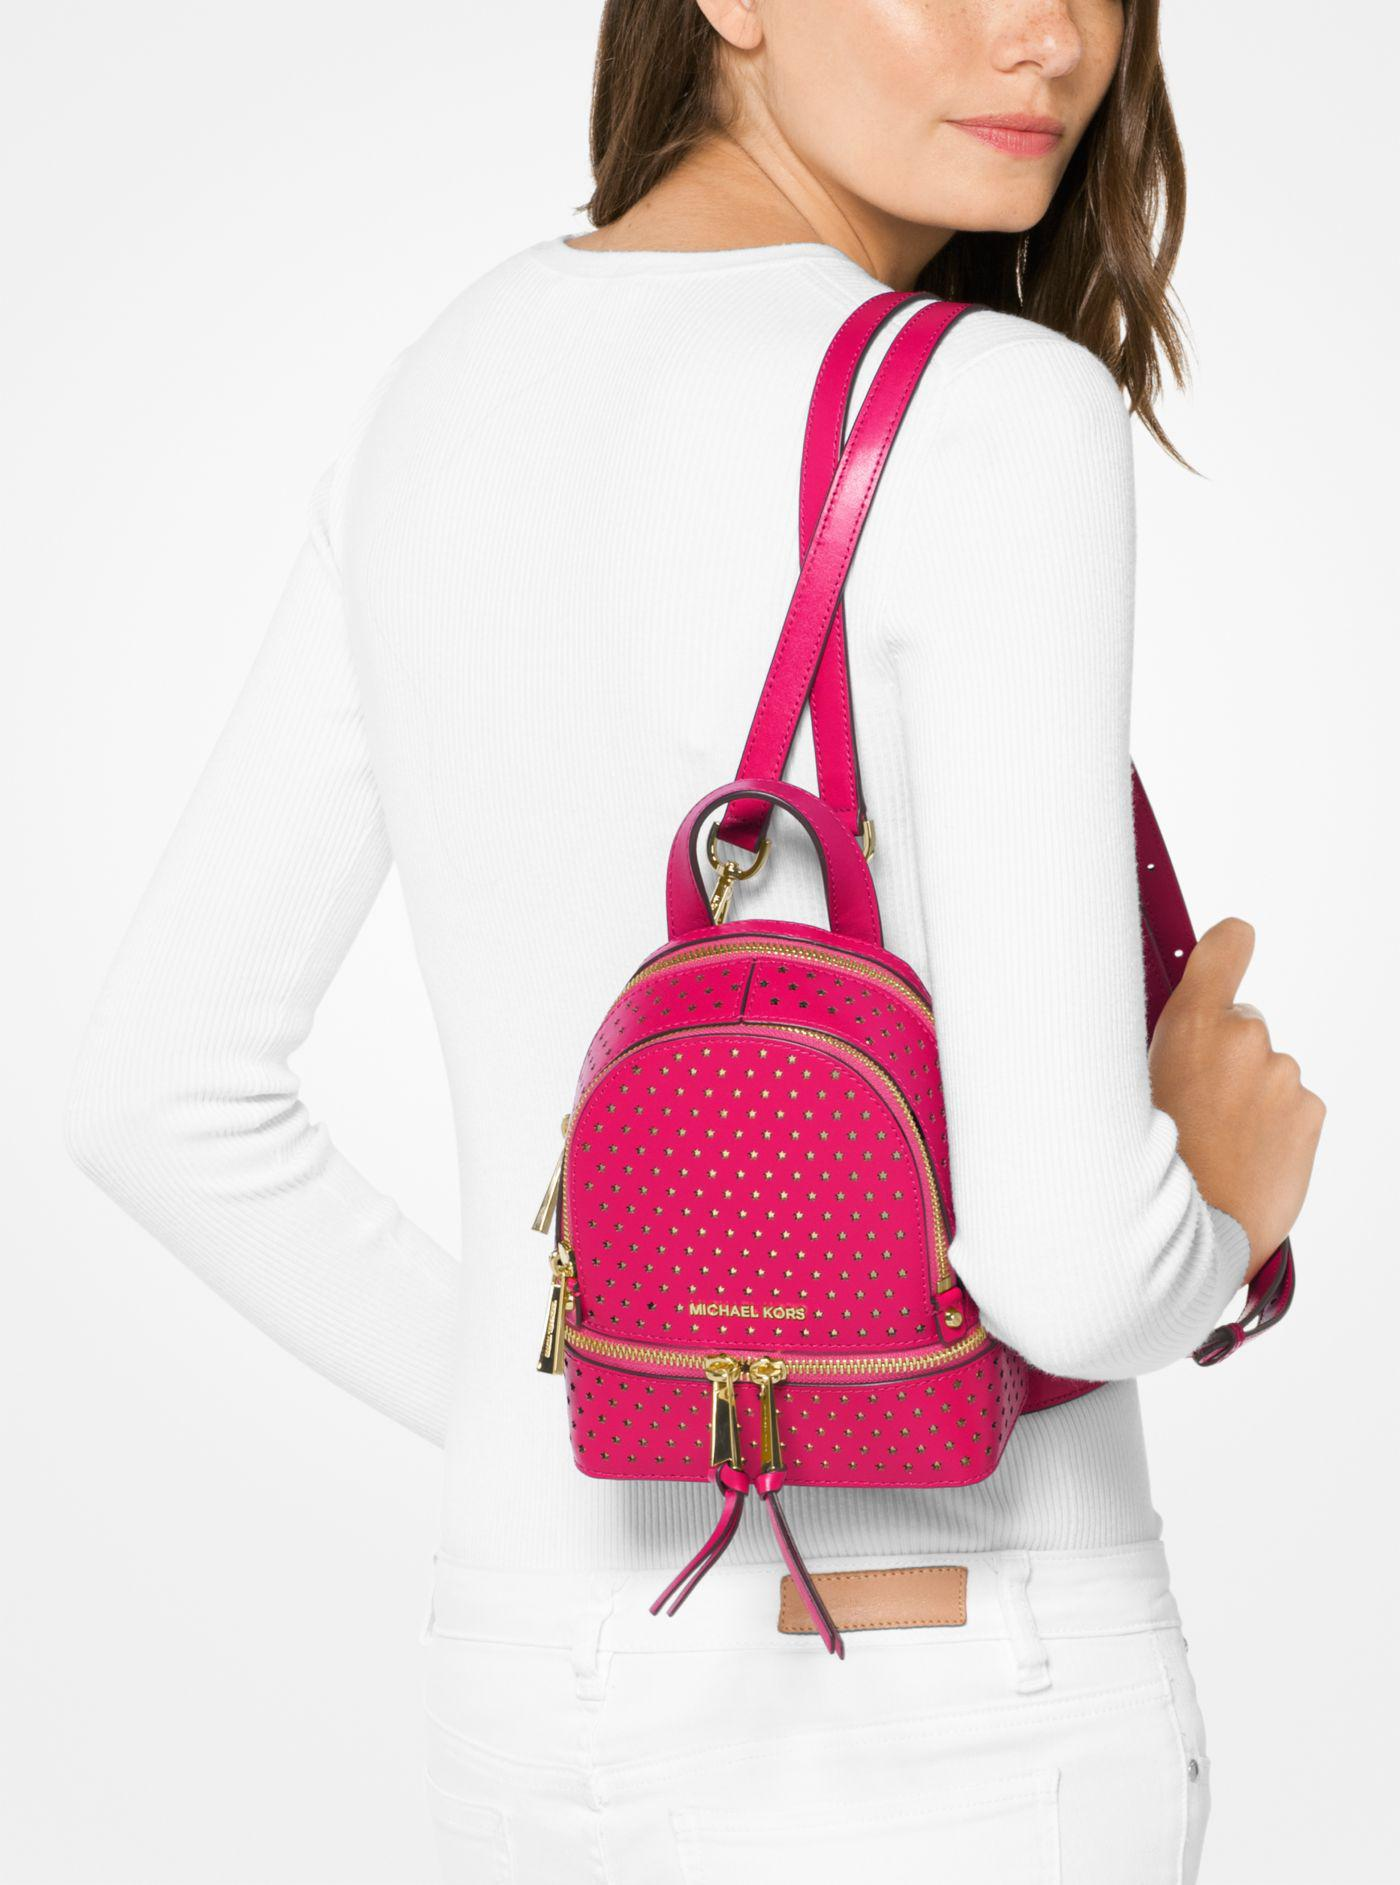 de69c180ba81 switzerland michael kors rhea perforated backpack fe643 de303